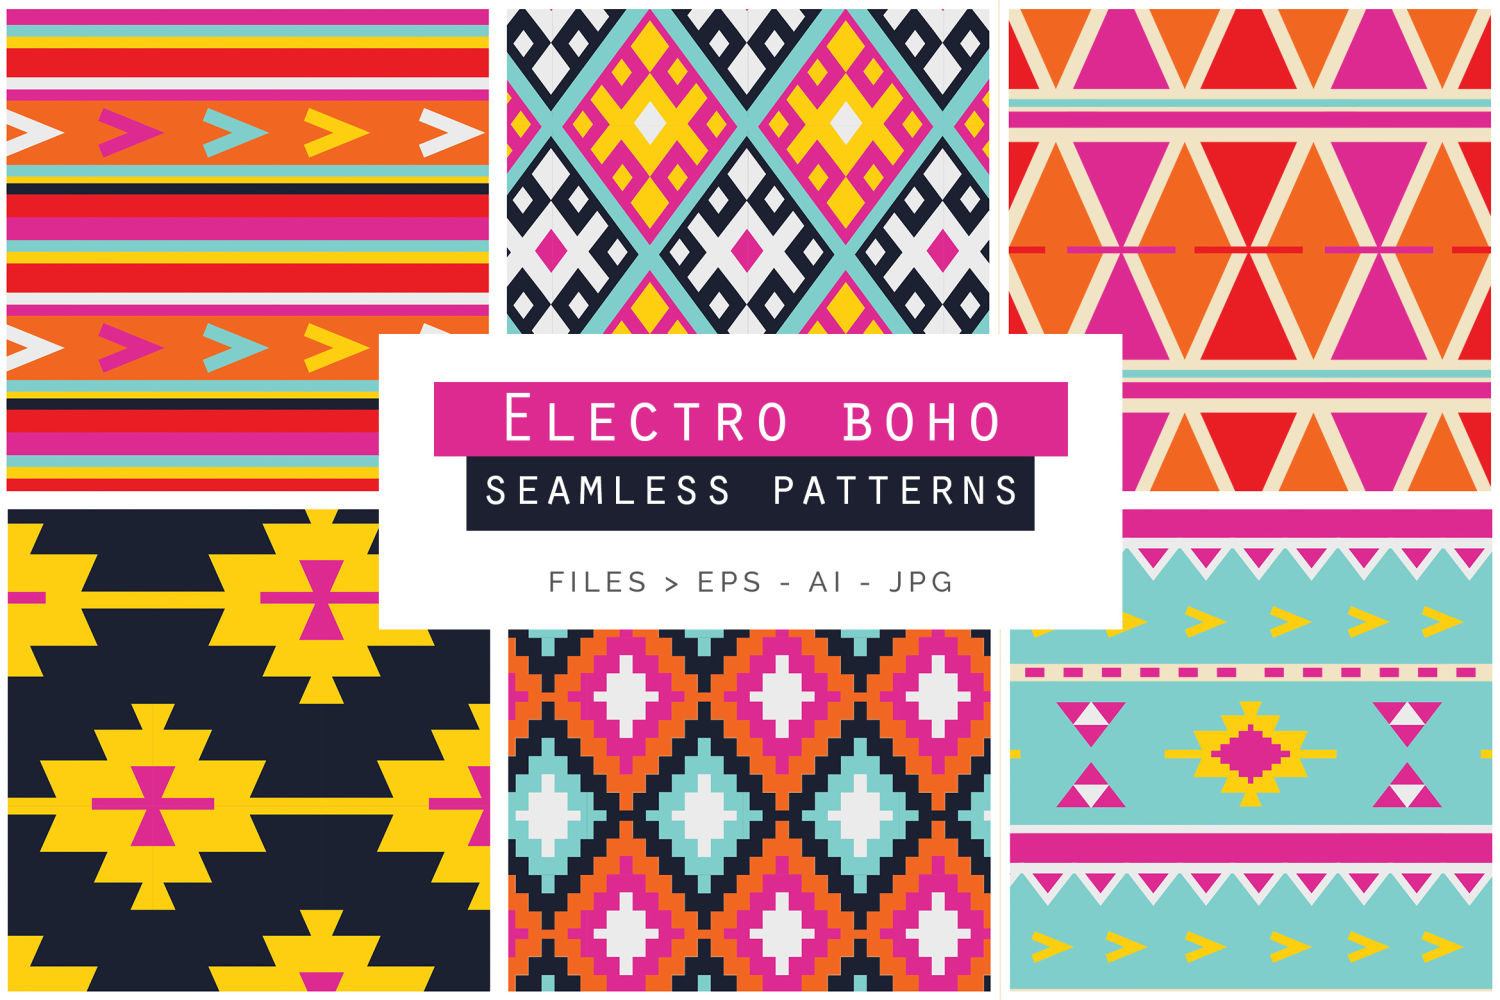 Electro Boho Seamless Vector Patterns